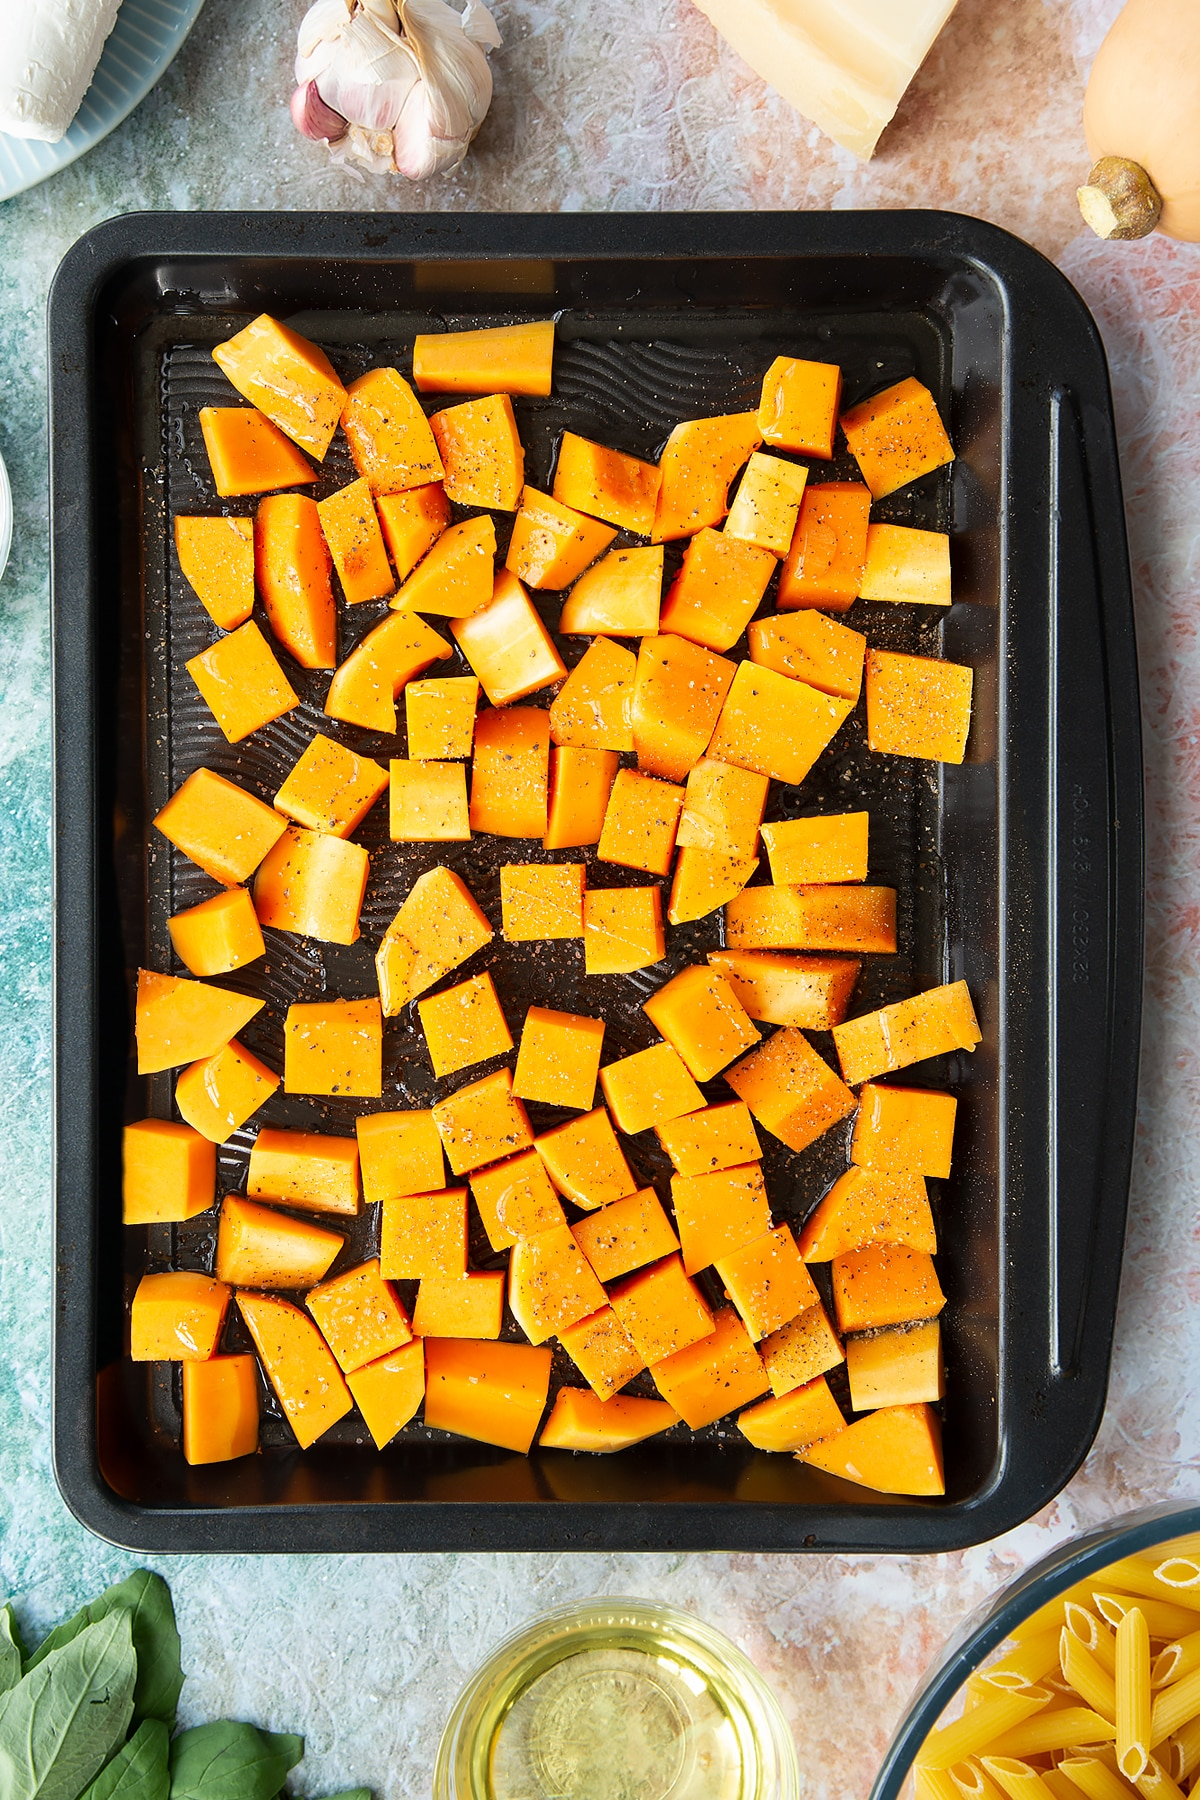 Chunks of butternut squash on a black tray, seasoned with oil, salt and pepper. Ingredients to make penne with butternut squash and goat cheese surround the tray.